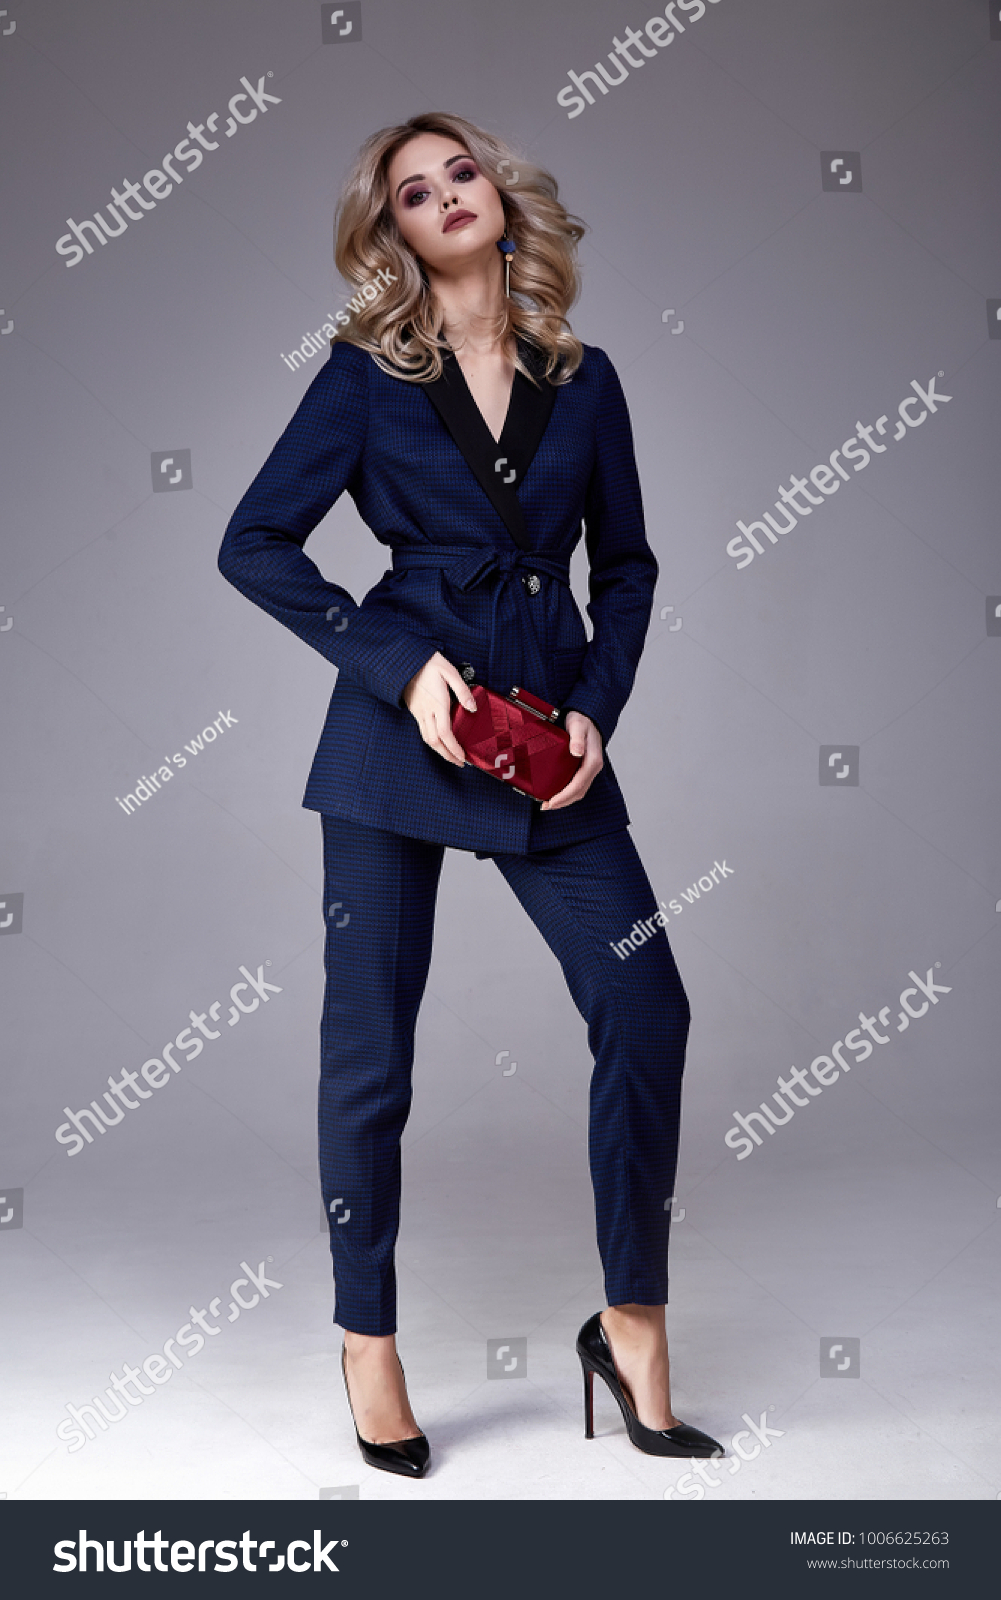 215c8afc35dd1 Beautiful business woman lady boss style perfect body shape blond hair wear  blue formal suit elegance casual style secretary diplomatic protocol office  ...